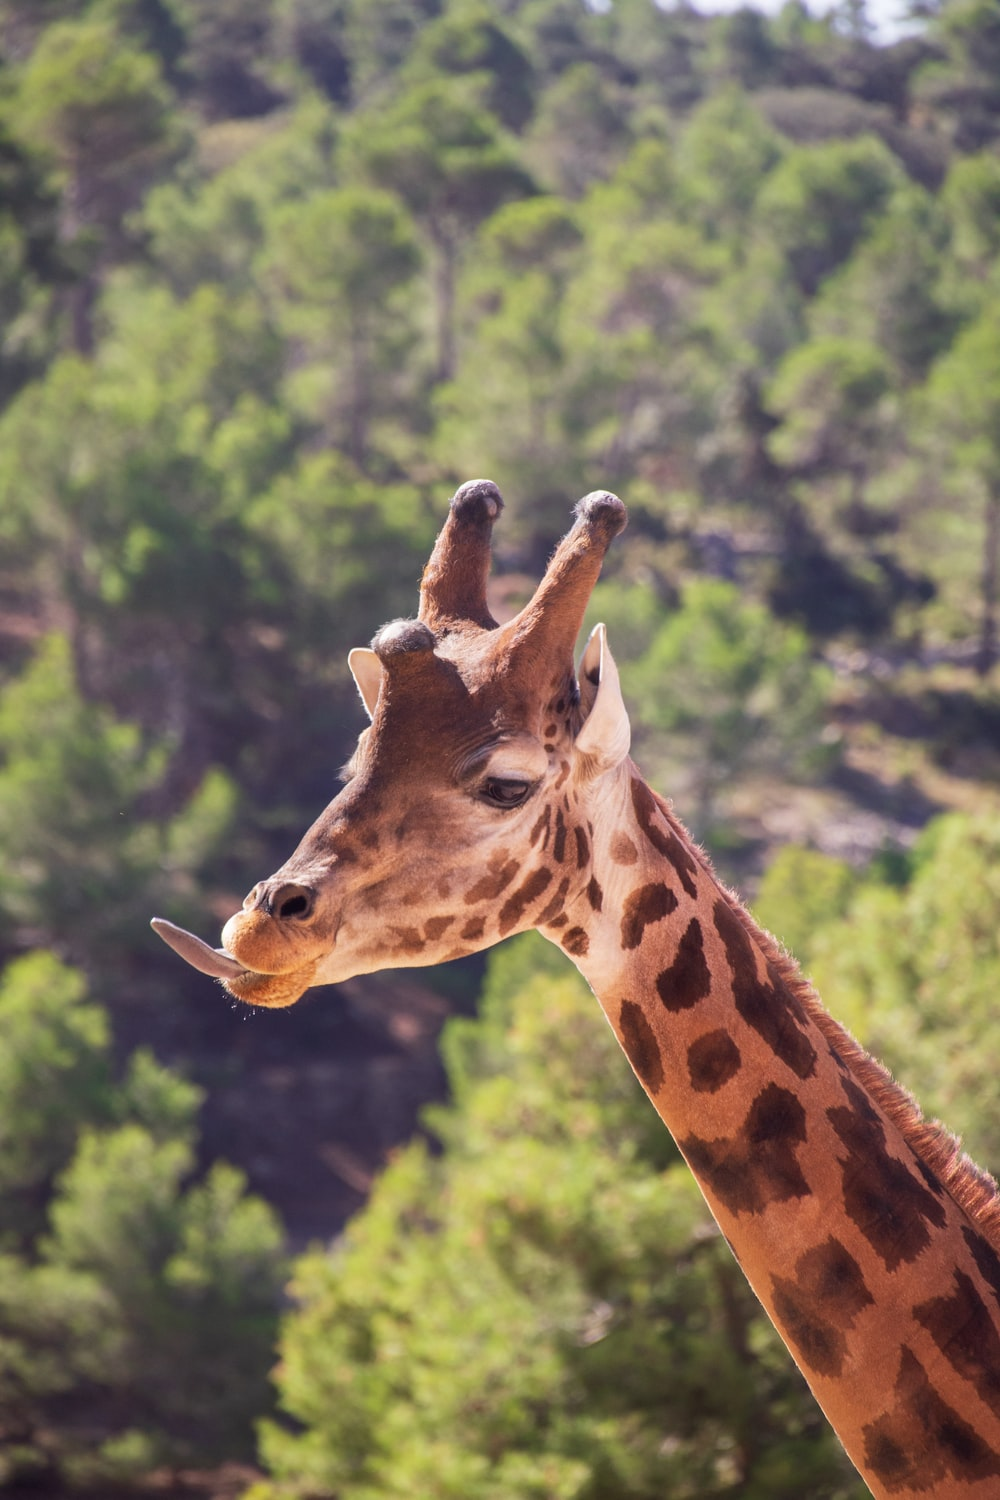 brown giraffe in close up photography during daytime